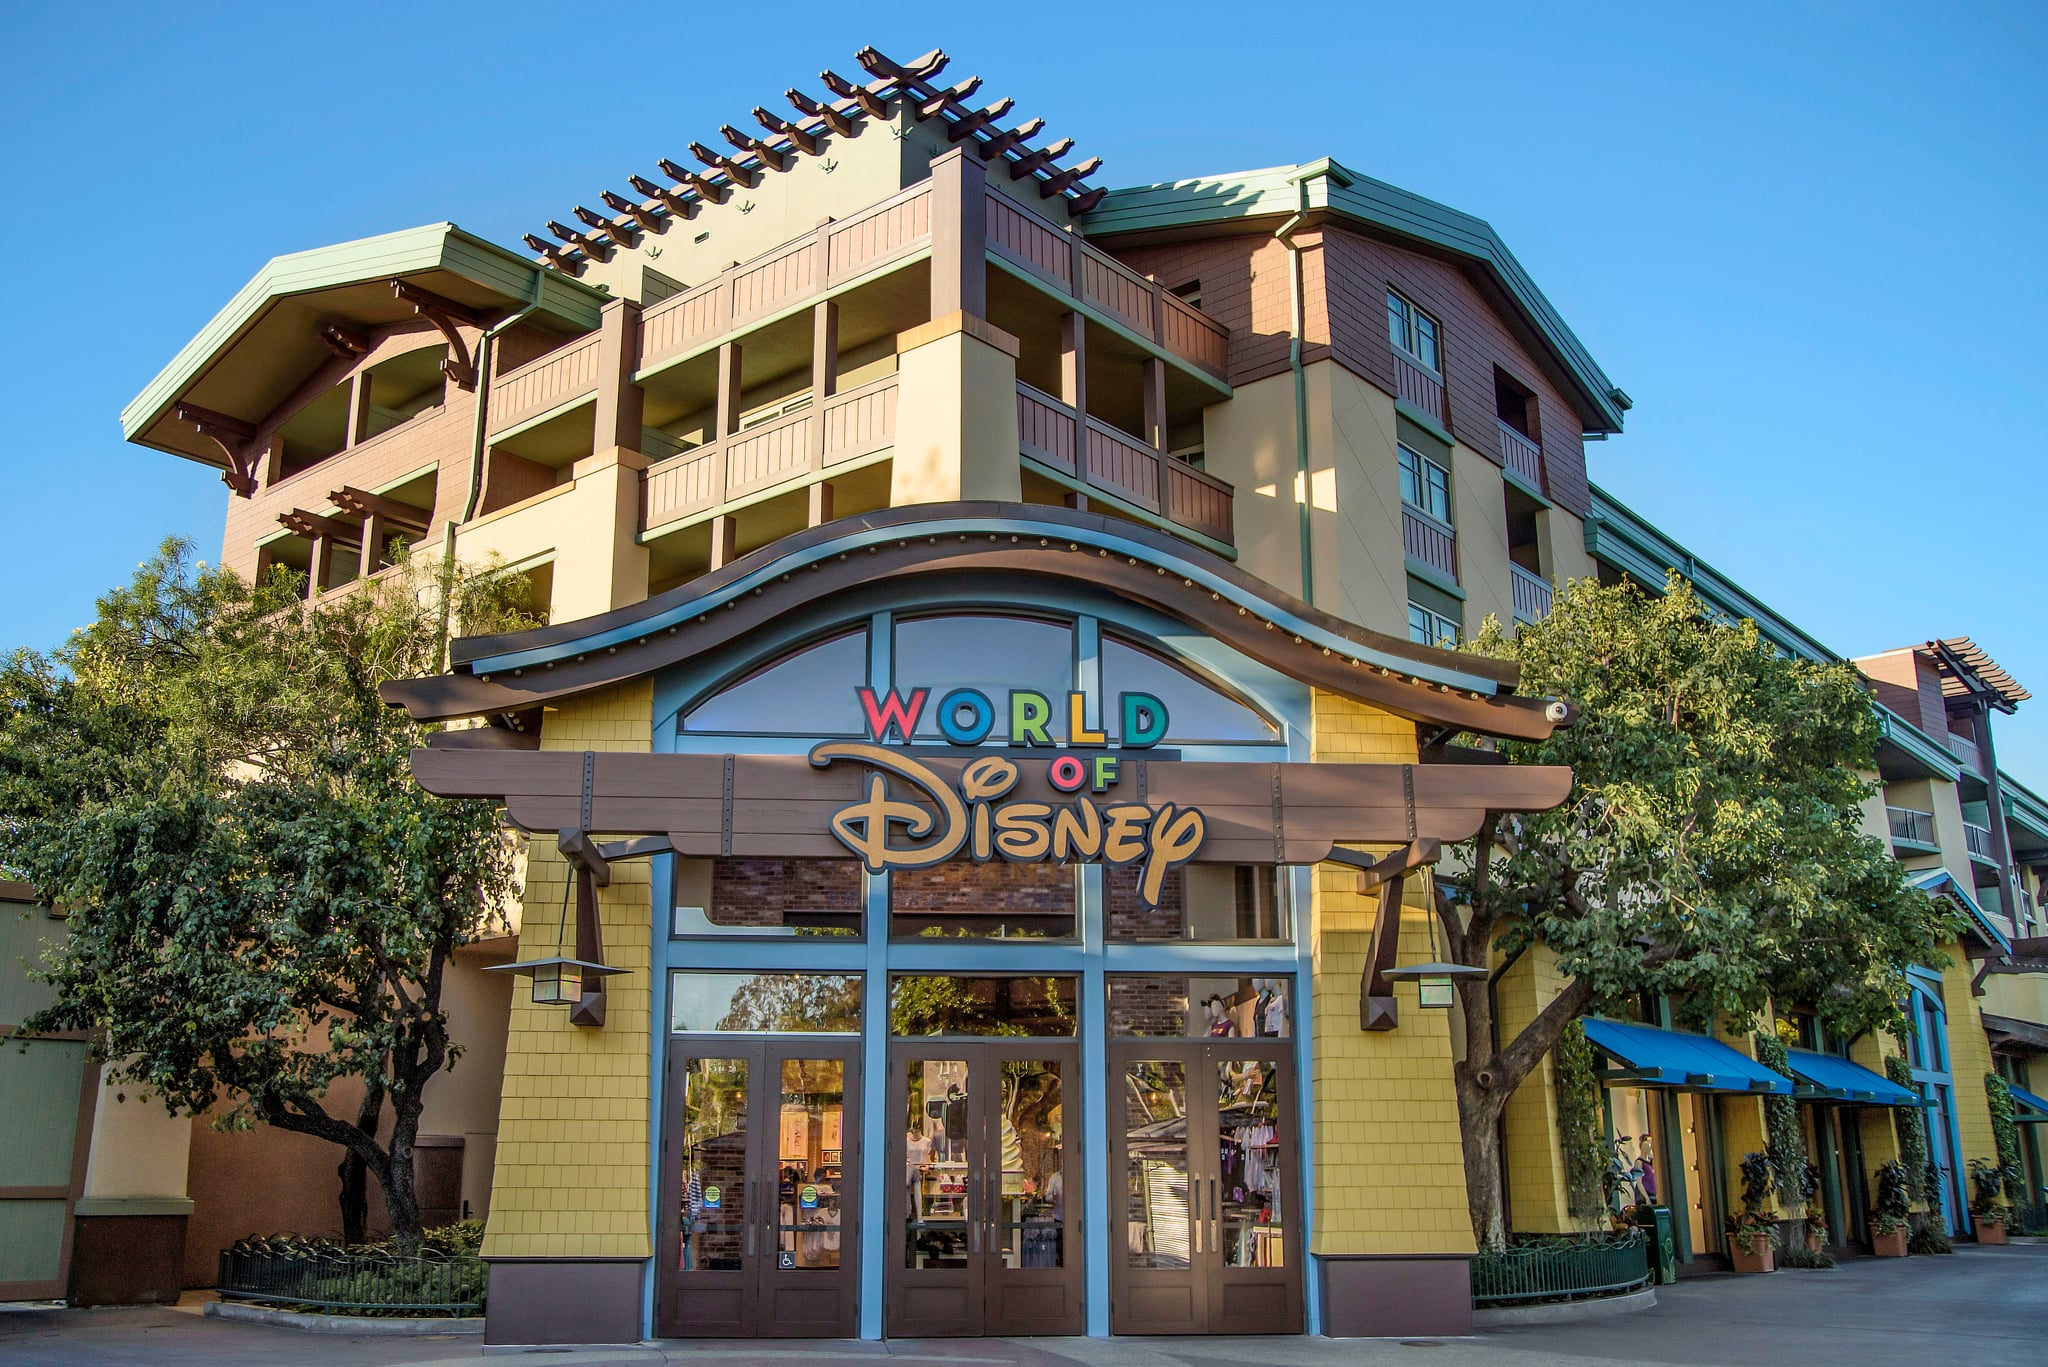 World of Disney, the ultimate shopping destination at the Downtown Disney District, now features a reimagined layout that makes shopping easier and more fun. The transformation begins with the stores exterior, which features new marquees and magical window displays. Inside, guests discover an open atmosphere with uniquely themed areas featuring the hottest Disney merchandise. World of Disney regularly rolls out exclusive Disney Parks merchandise, reinforcing its reputation as a must-visit destination for Disney fans. The Downtown Disney District is located in Anaheim, Calif. (Joshua Sudock/Disneyland Resort)